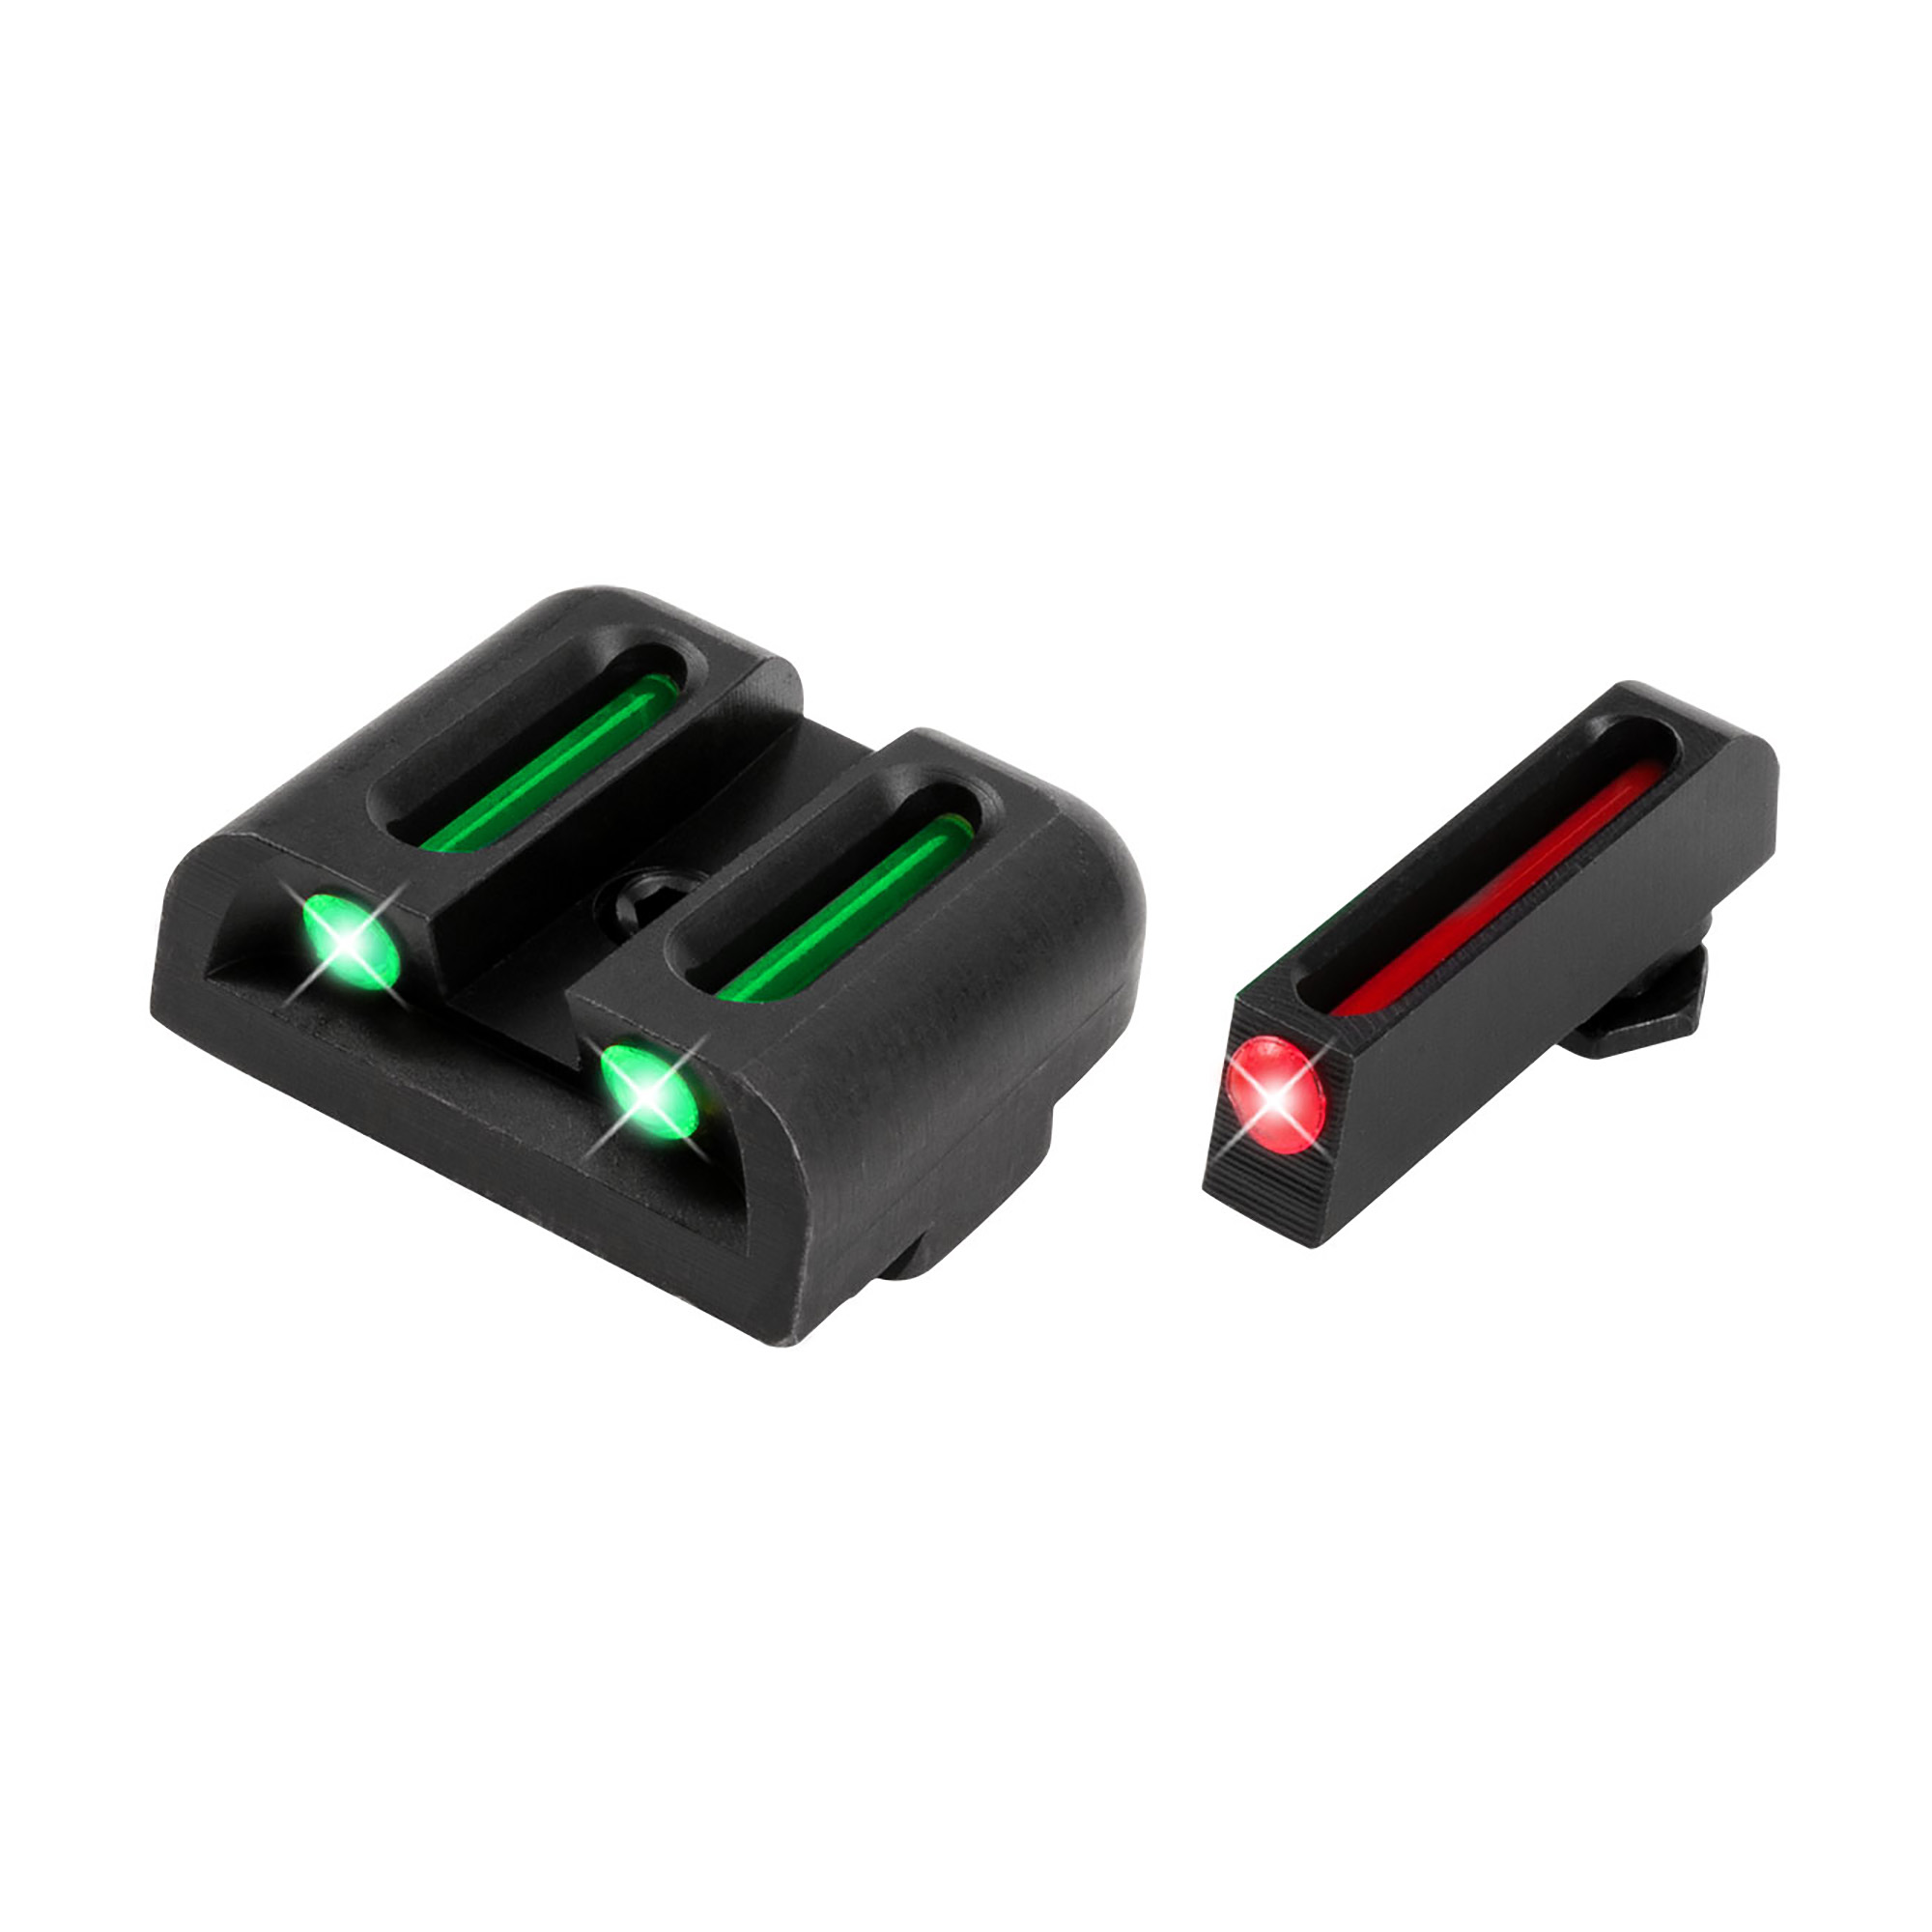 """TRUGLO fiber optics absorb and channel the existing ambient light to produce bright and precise aiming points. TRUGLO sights are the brightest aiming points in the industry. They give the shooter greater sight contrast for quicker sight alignment"""" better target acquisition and a clearer sight picture under all shooting conditions. TRUGLO fiber optics are ideal for dusk and dawn or other low light hunting conditions."""